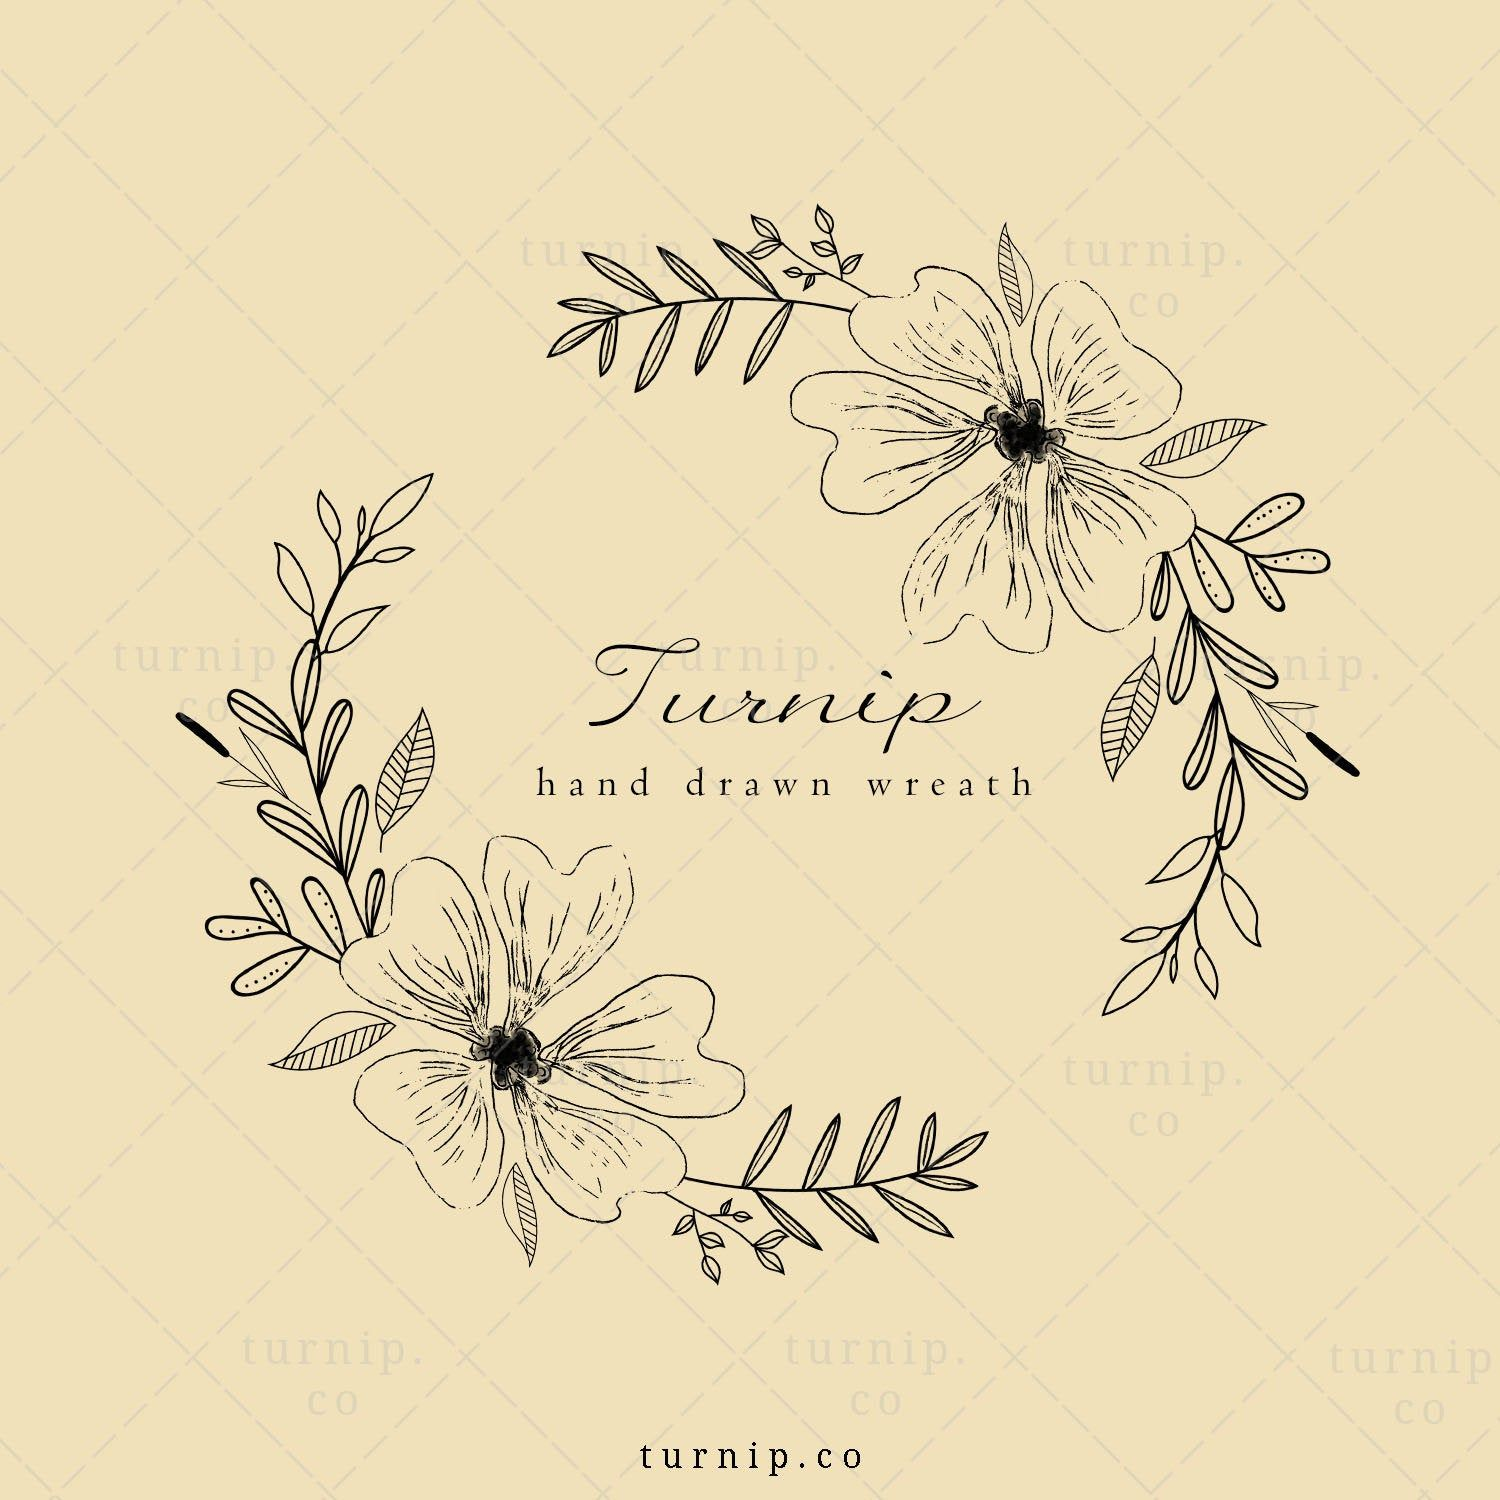 Floral Wreath Clipart Black And White Flower Clipart Leaf Wreath Clipart For Wedding Logo Coloring Pages Fairy Dance Wreath Png Floral Wreath Clipart Flower Clipart Black Flowers